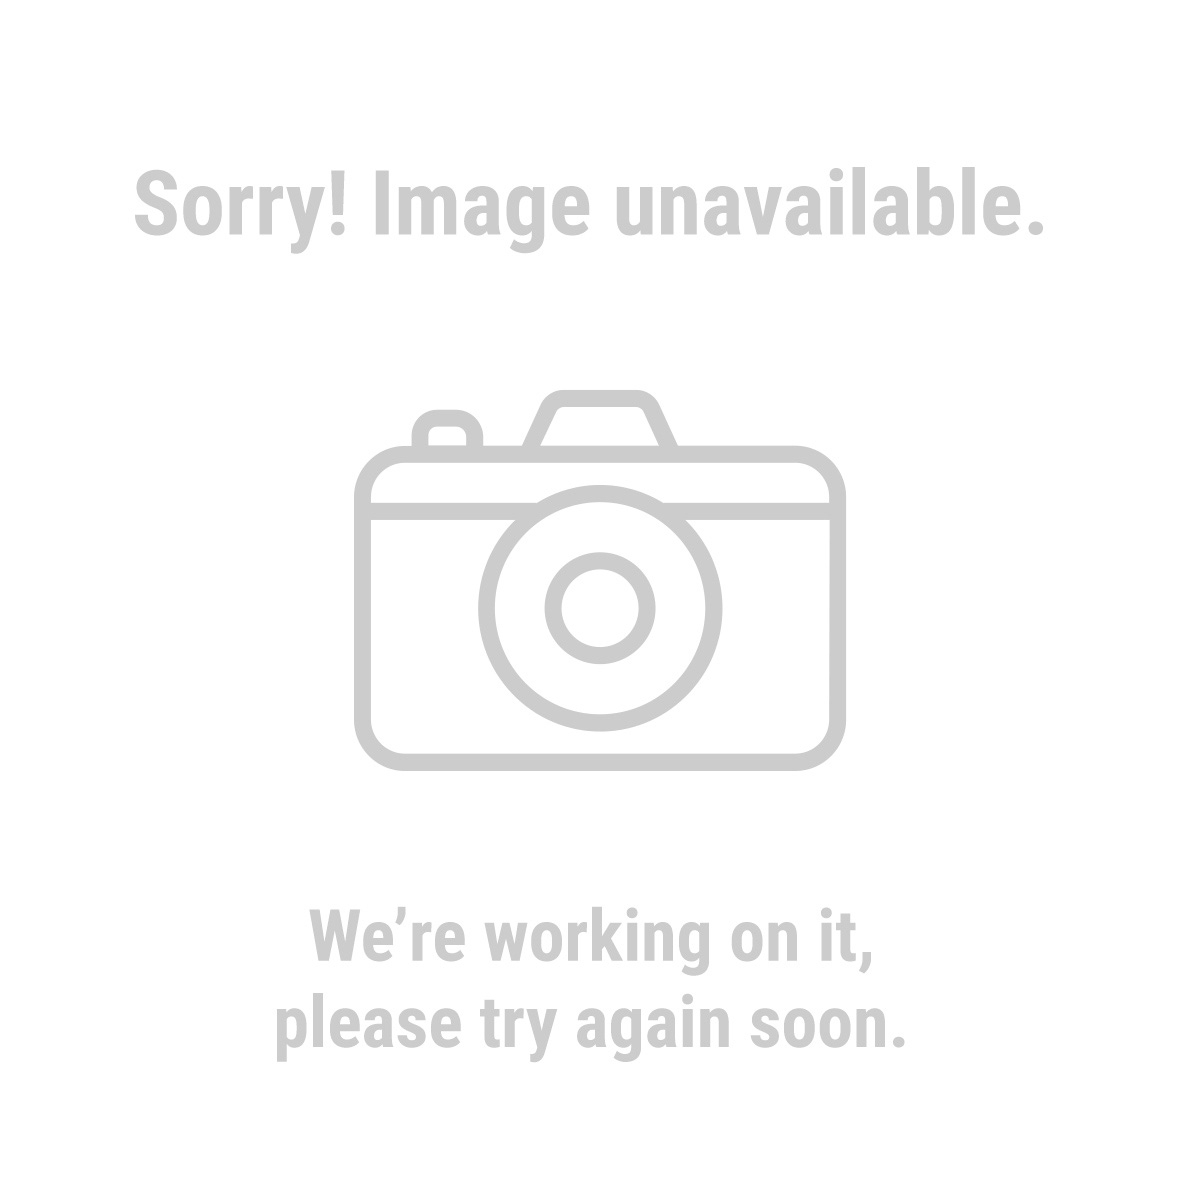 Pittsburgh® Automotive 60306 5 Piece Front End Service Tool Set